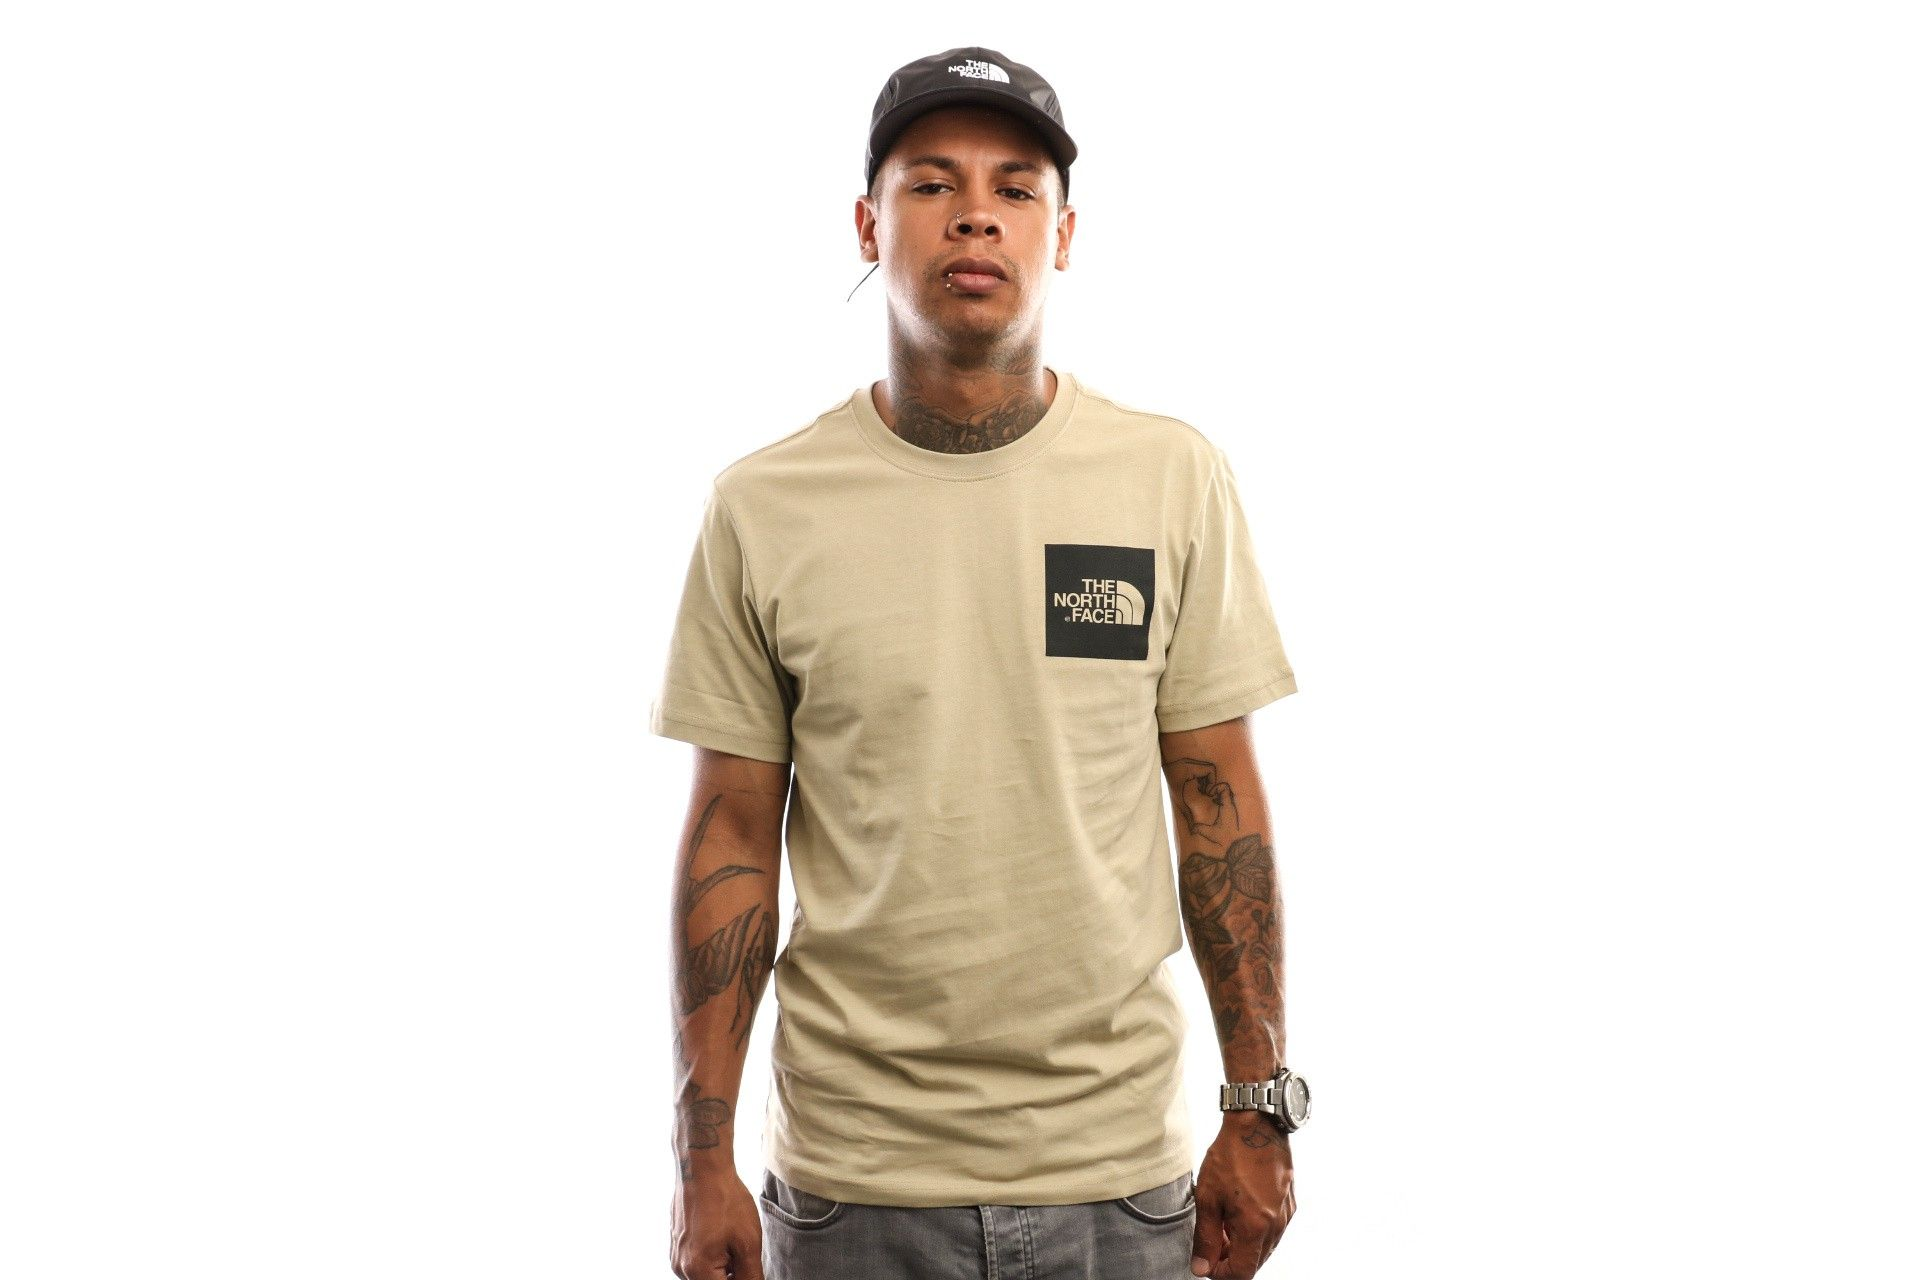 Afbeelding van The North Face S/S Fine Tee T0Ceq5Zdl T Shirt Twill Beige